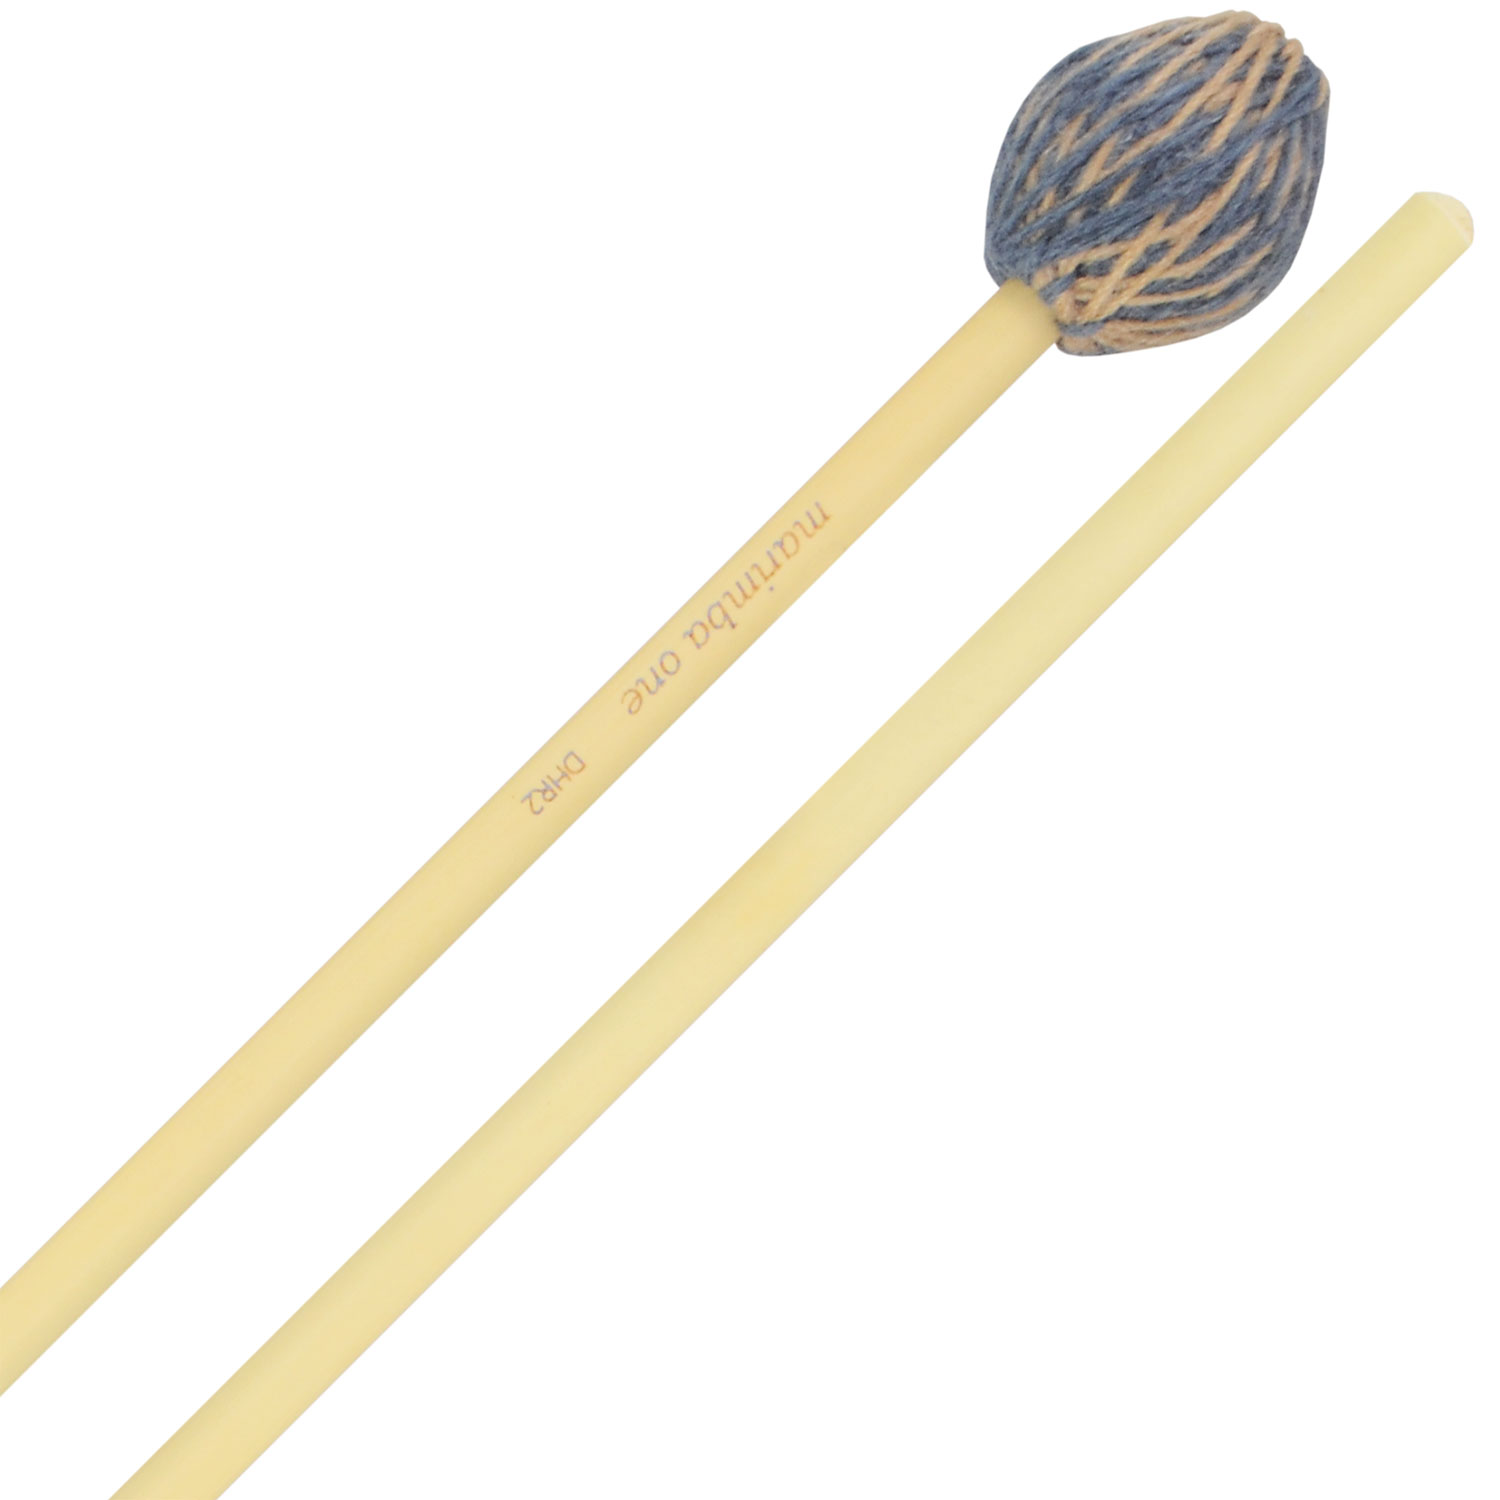 Marimba One Double Helix Hard Marimba Mallets with Rattan Shafts